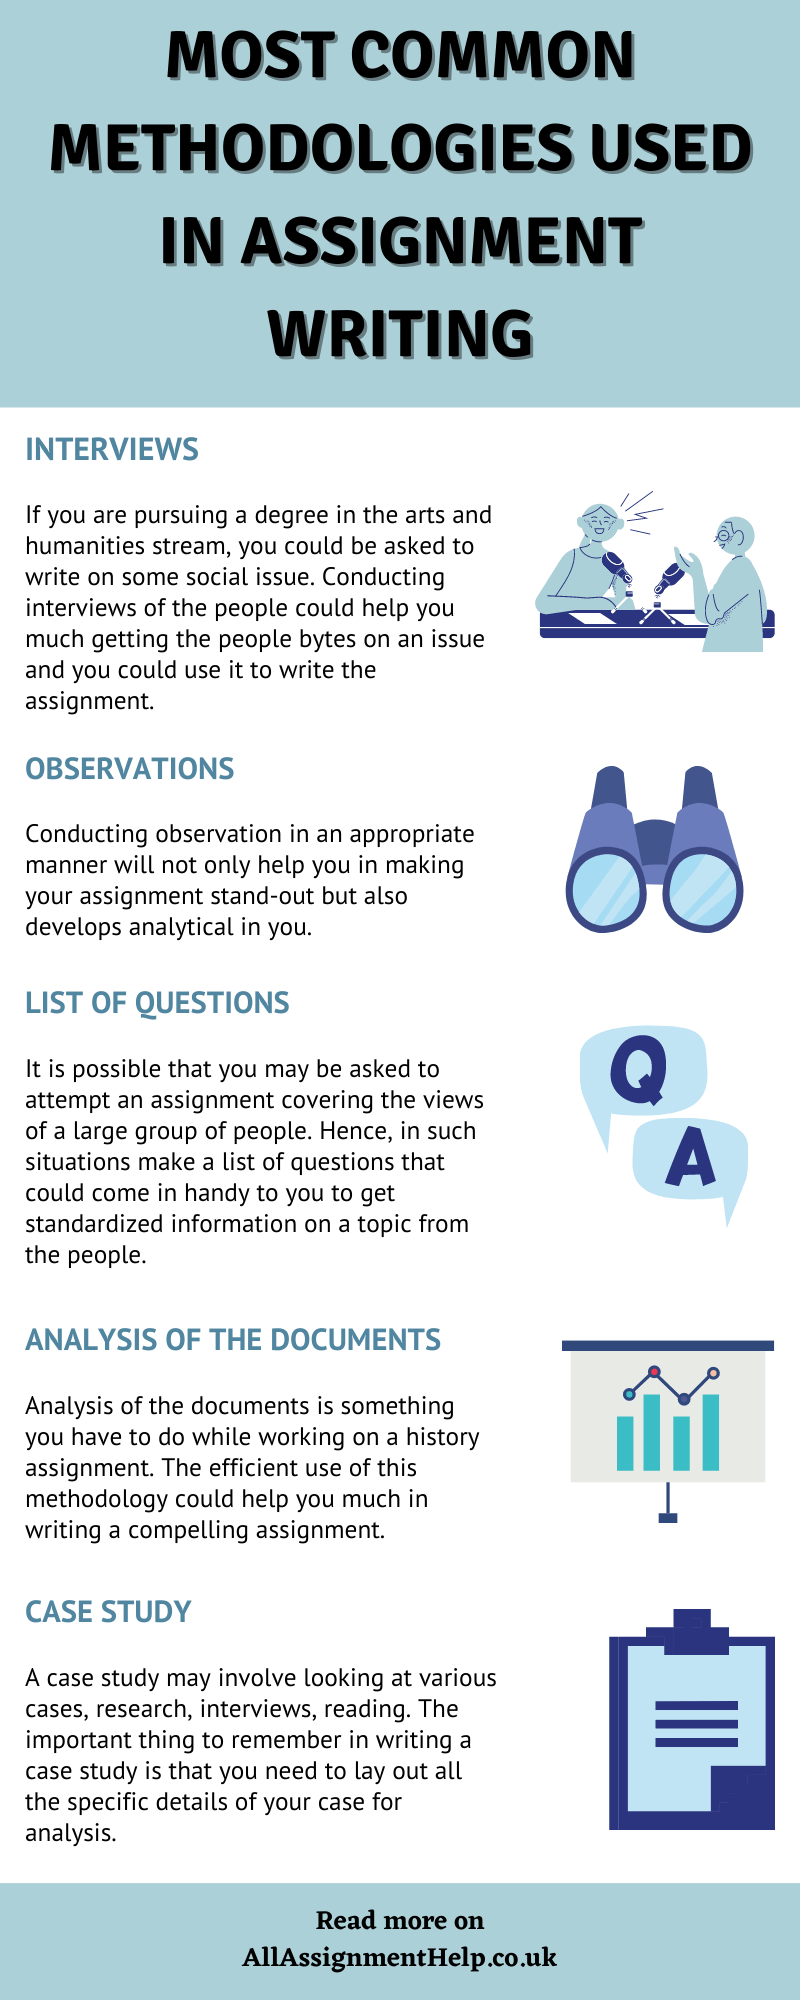 most-common-methodologies-used-in-assignment-writing